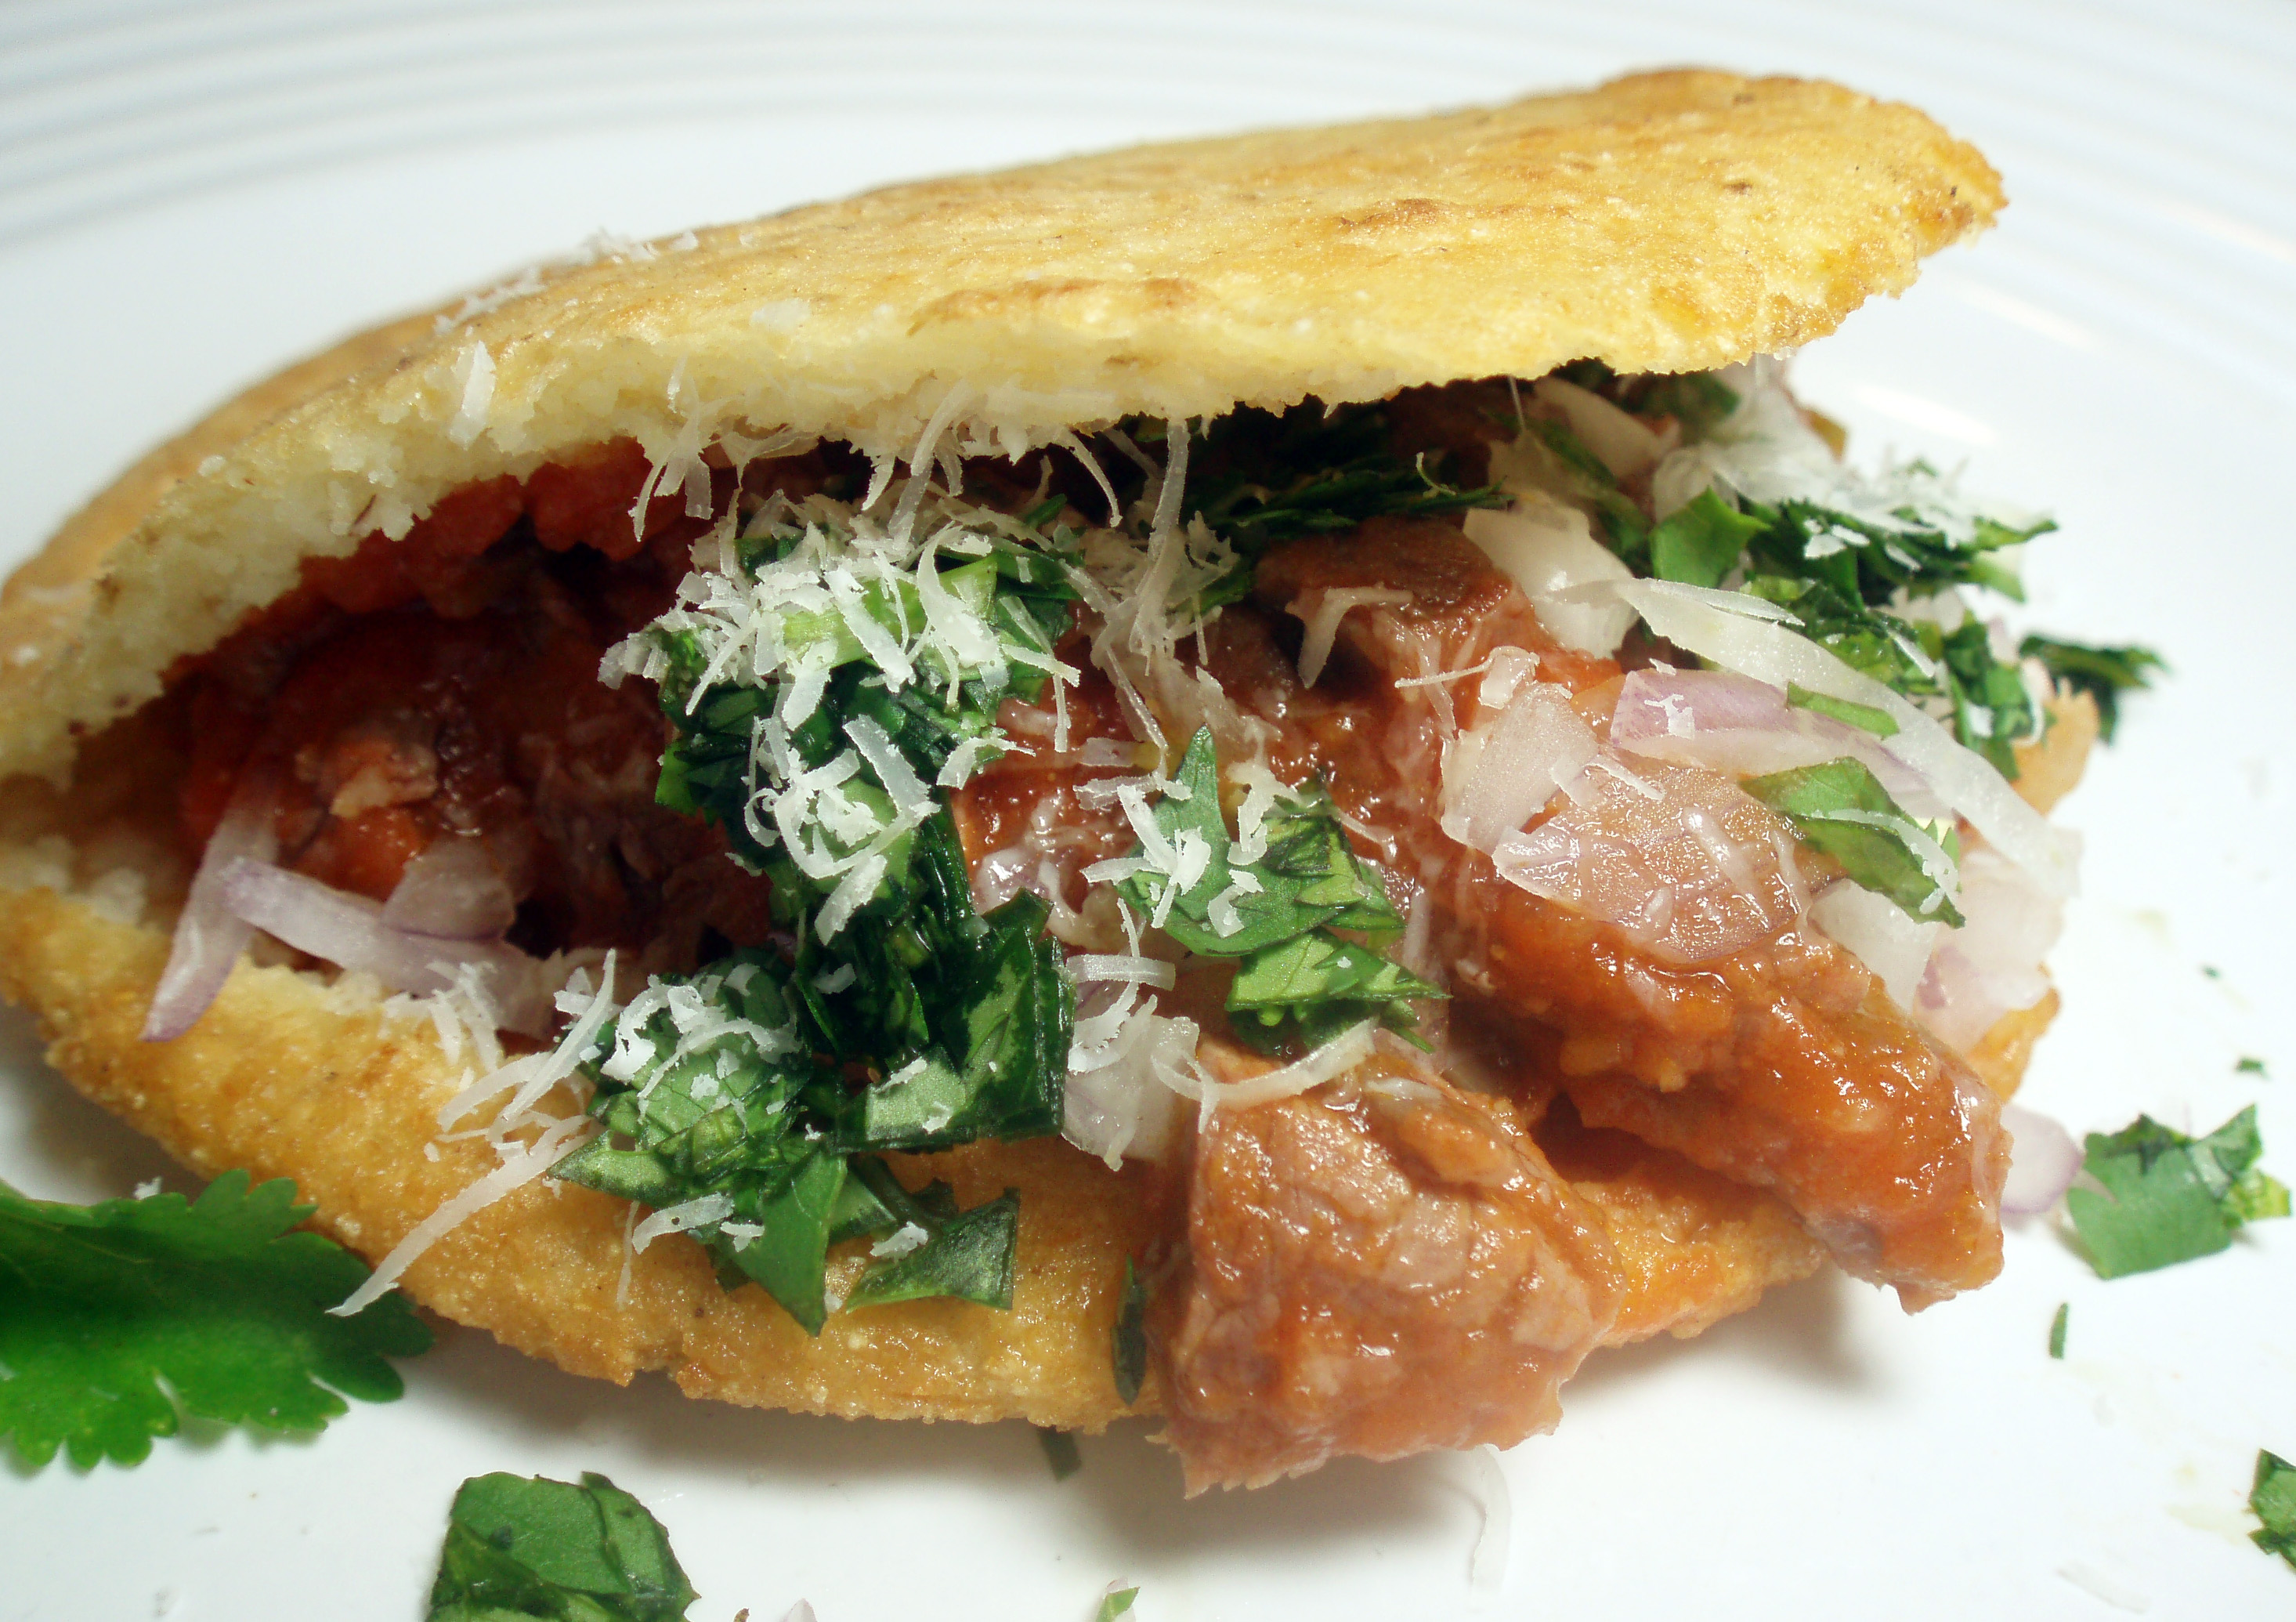 Gorditas with Shredded Beef (Gorditas con Carne Deshebrada) | Tasty ...